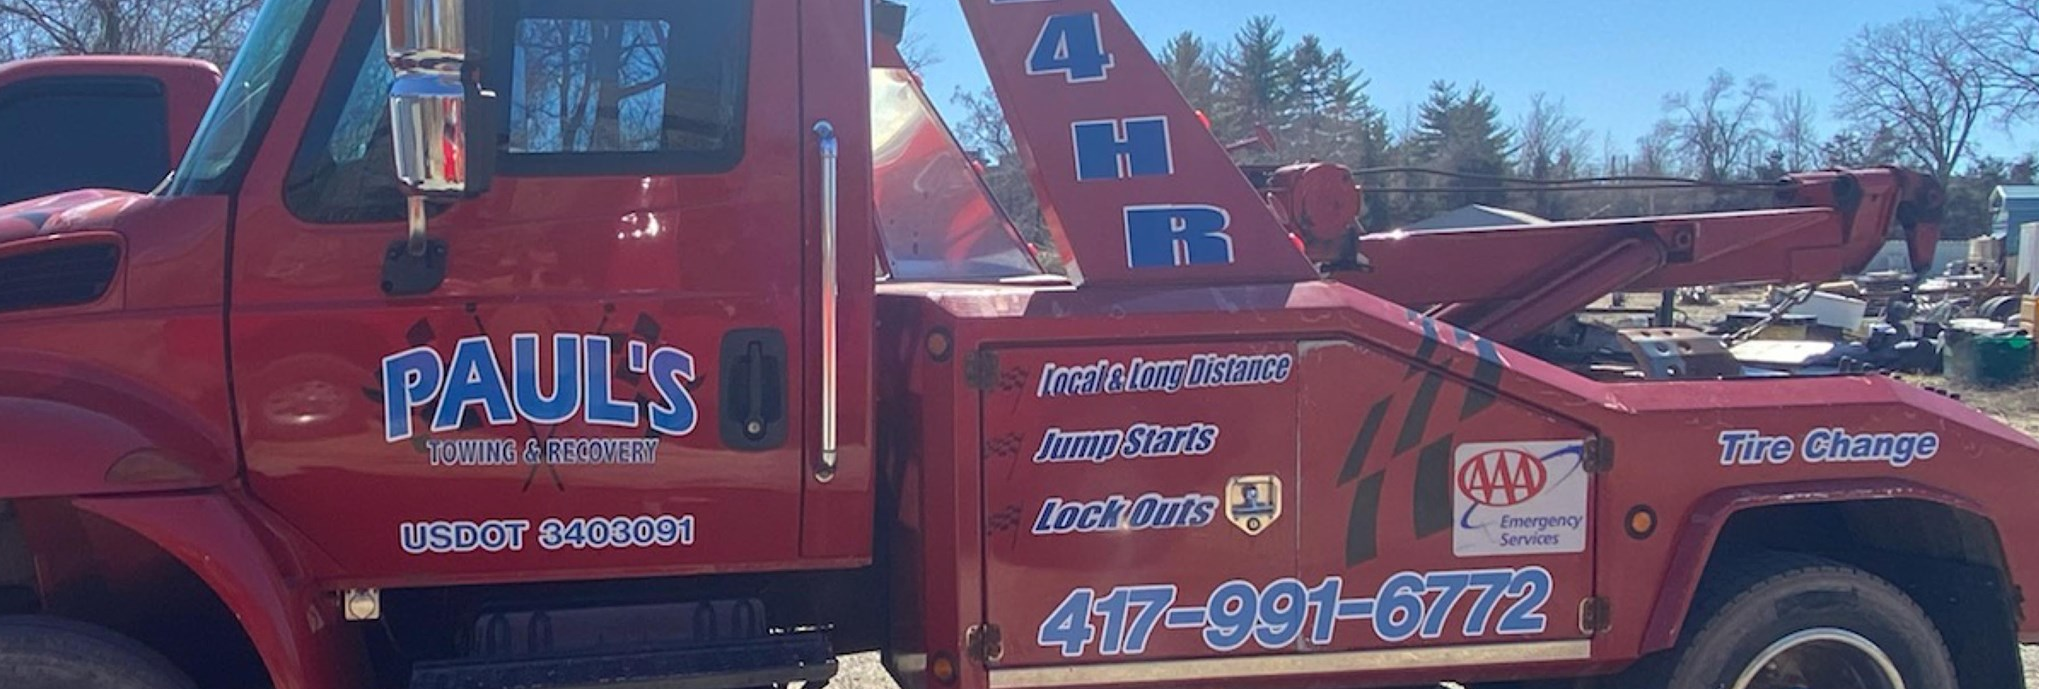 Paul's Towing & Recovery Towing.com Profile Banner